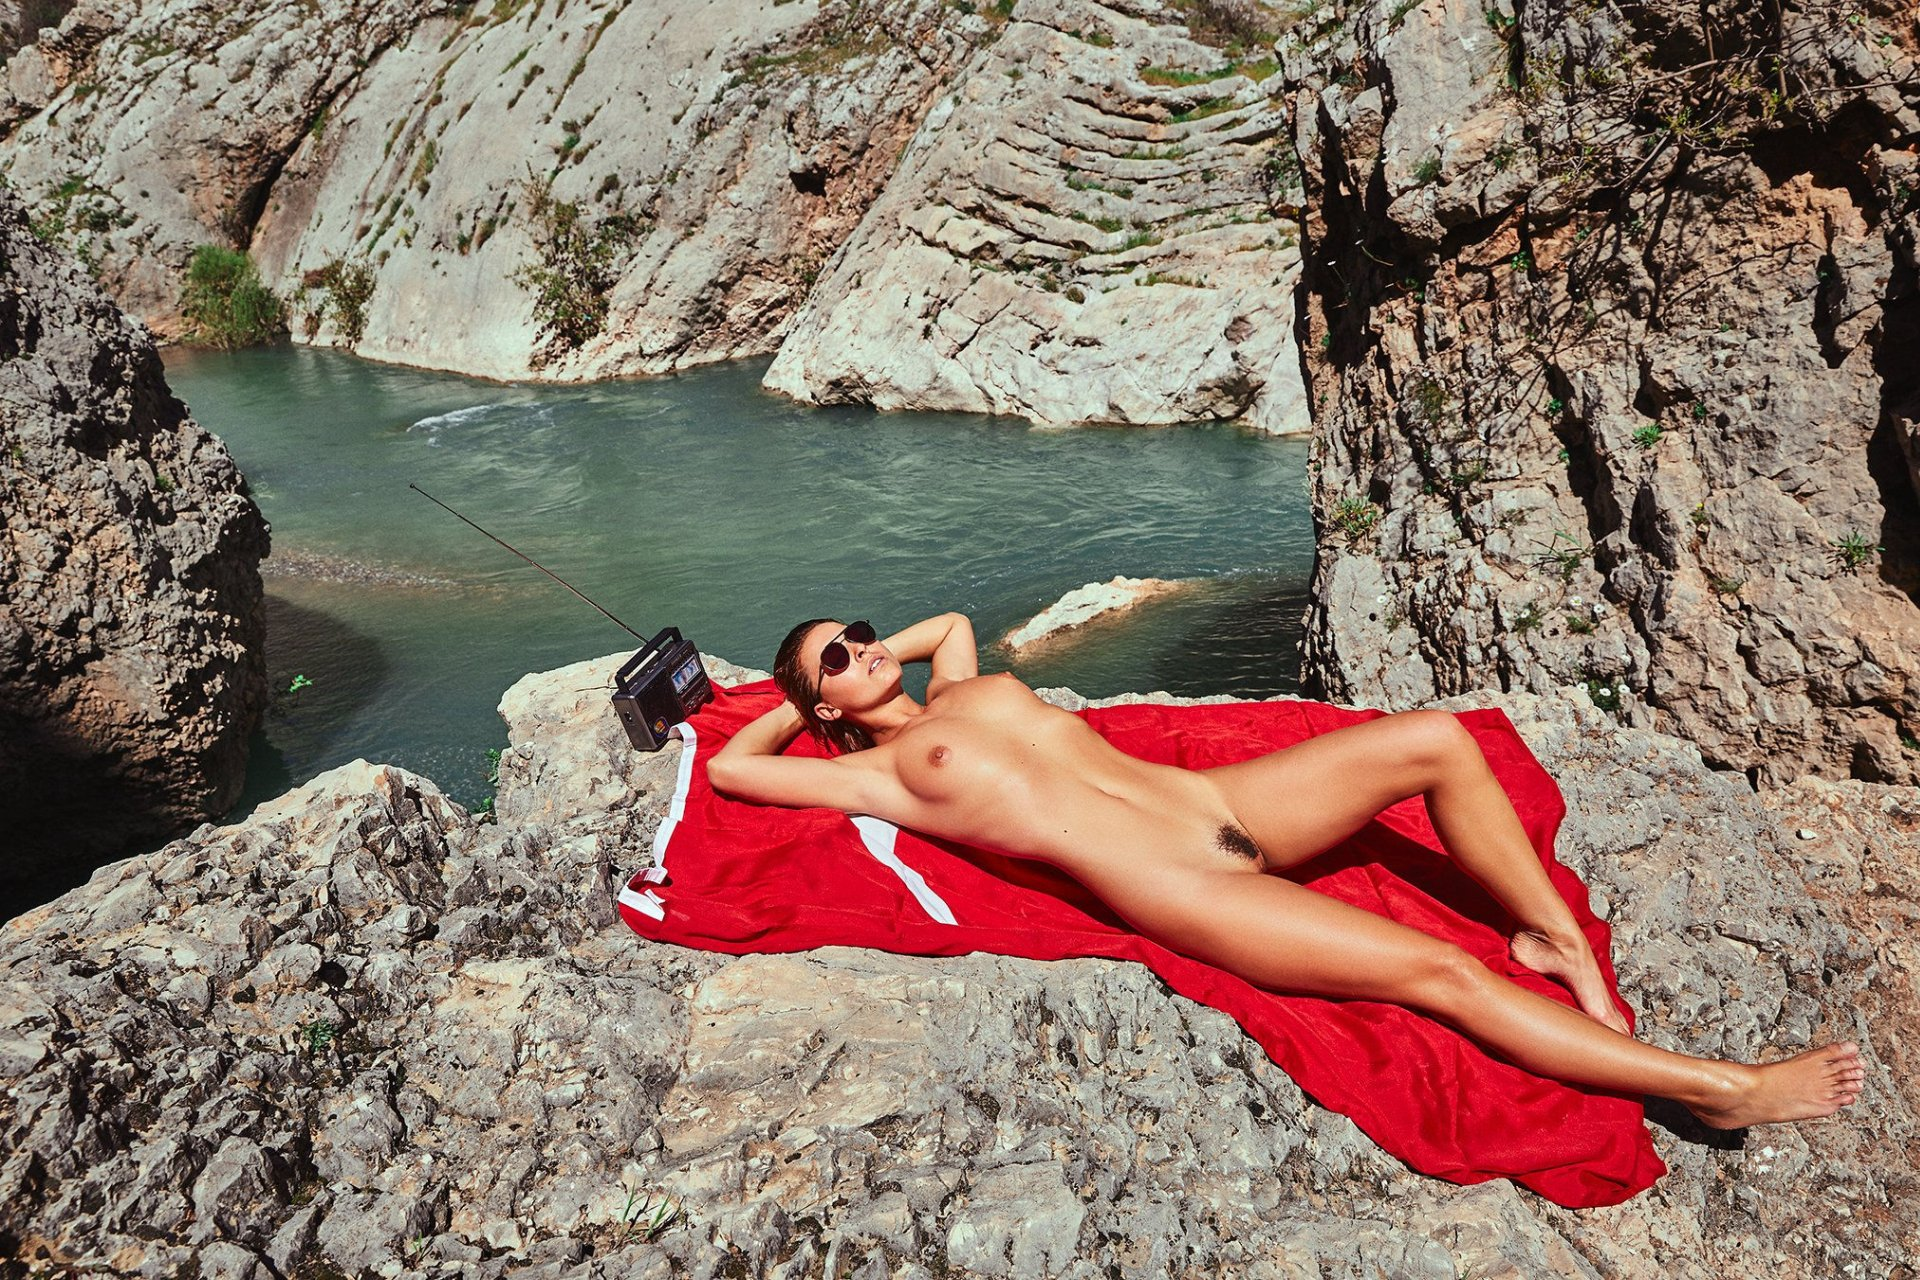 Discussion on this topic: Rosie jones swimsuit, marisa-papen-naked-4/